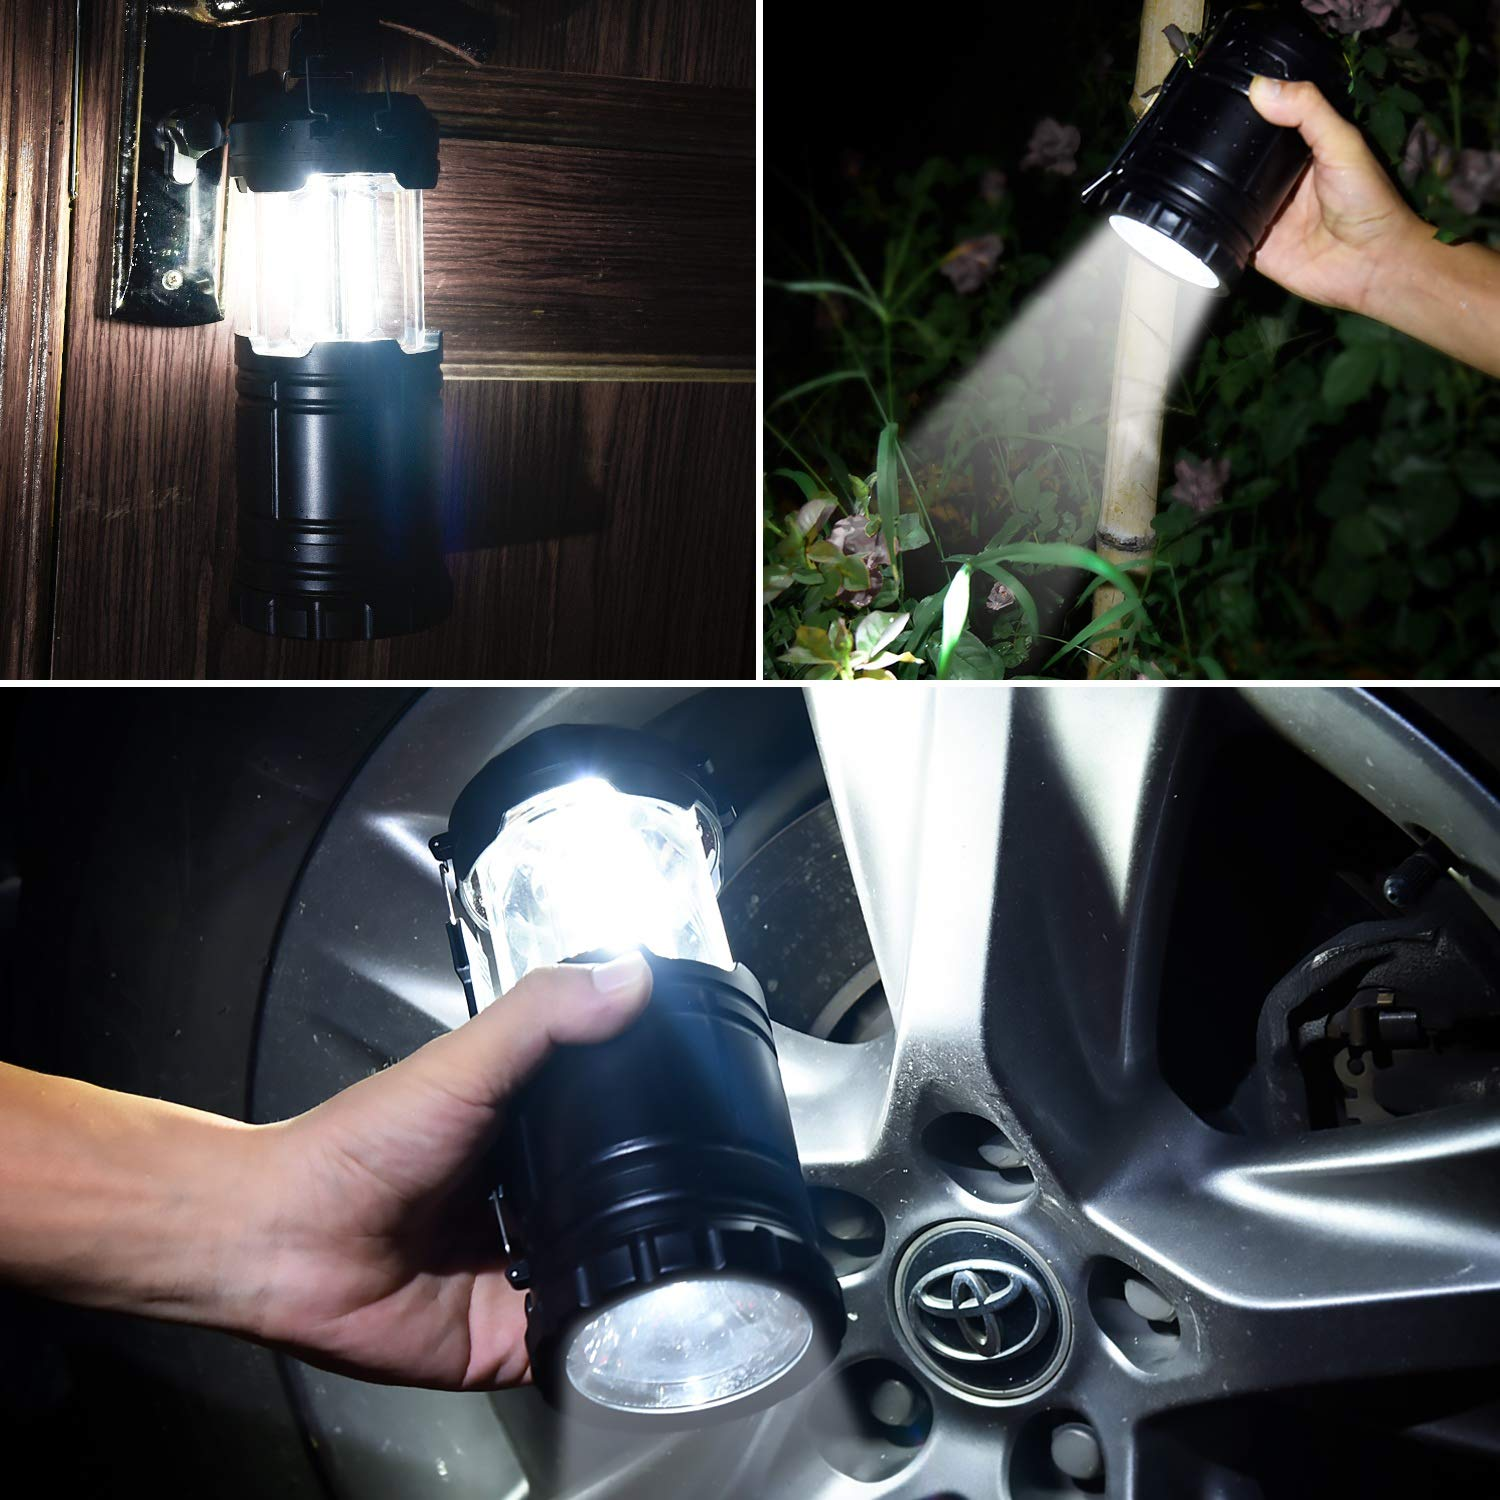 Ultra Bright 2-In-1 350 Lumen LED Camping Lantern 2 Pack, Bottom Torch - Portable Handheld Flashlights with 6 AA Batteries for Emergencies,Camping Gear,Hiking, Power Outages, Night Walk, Night Fishing